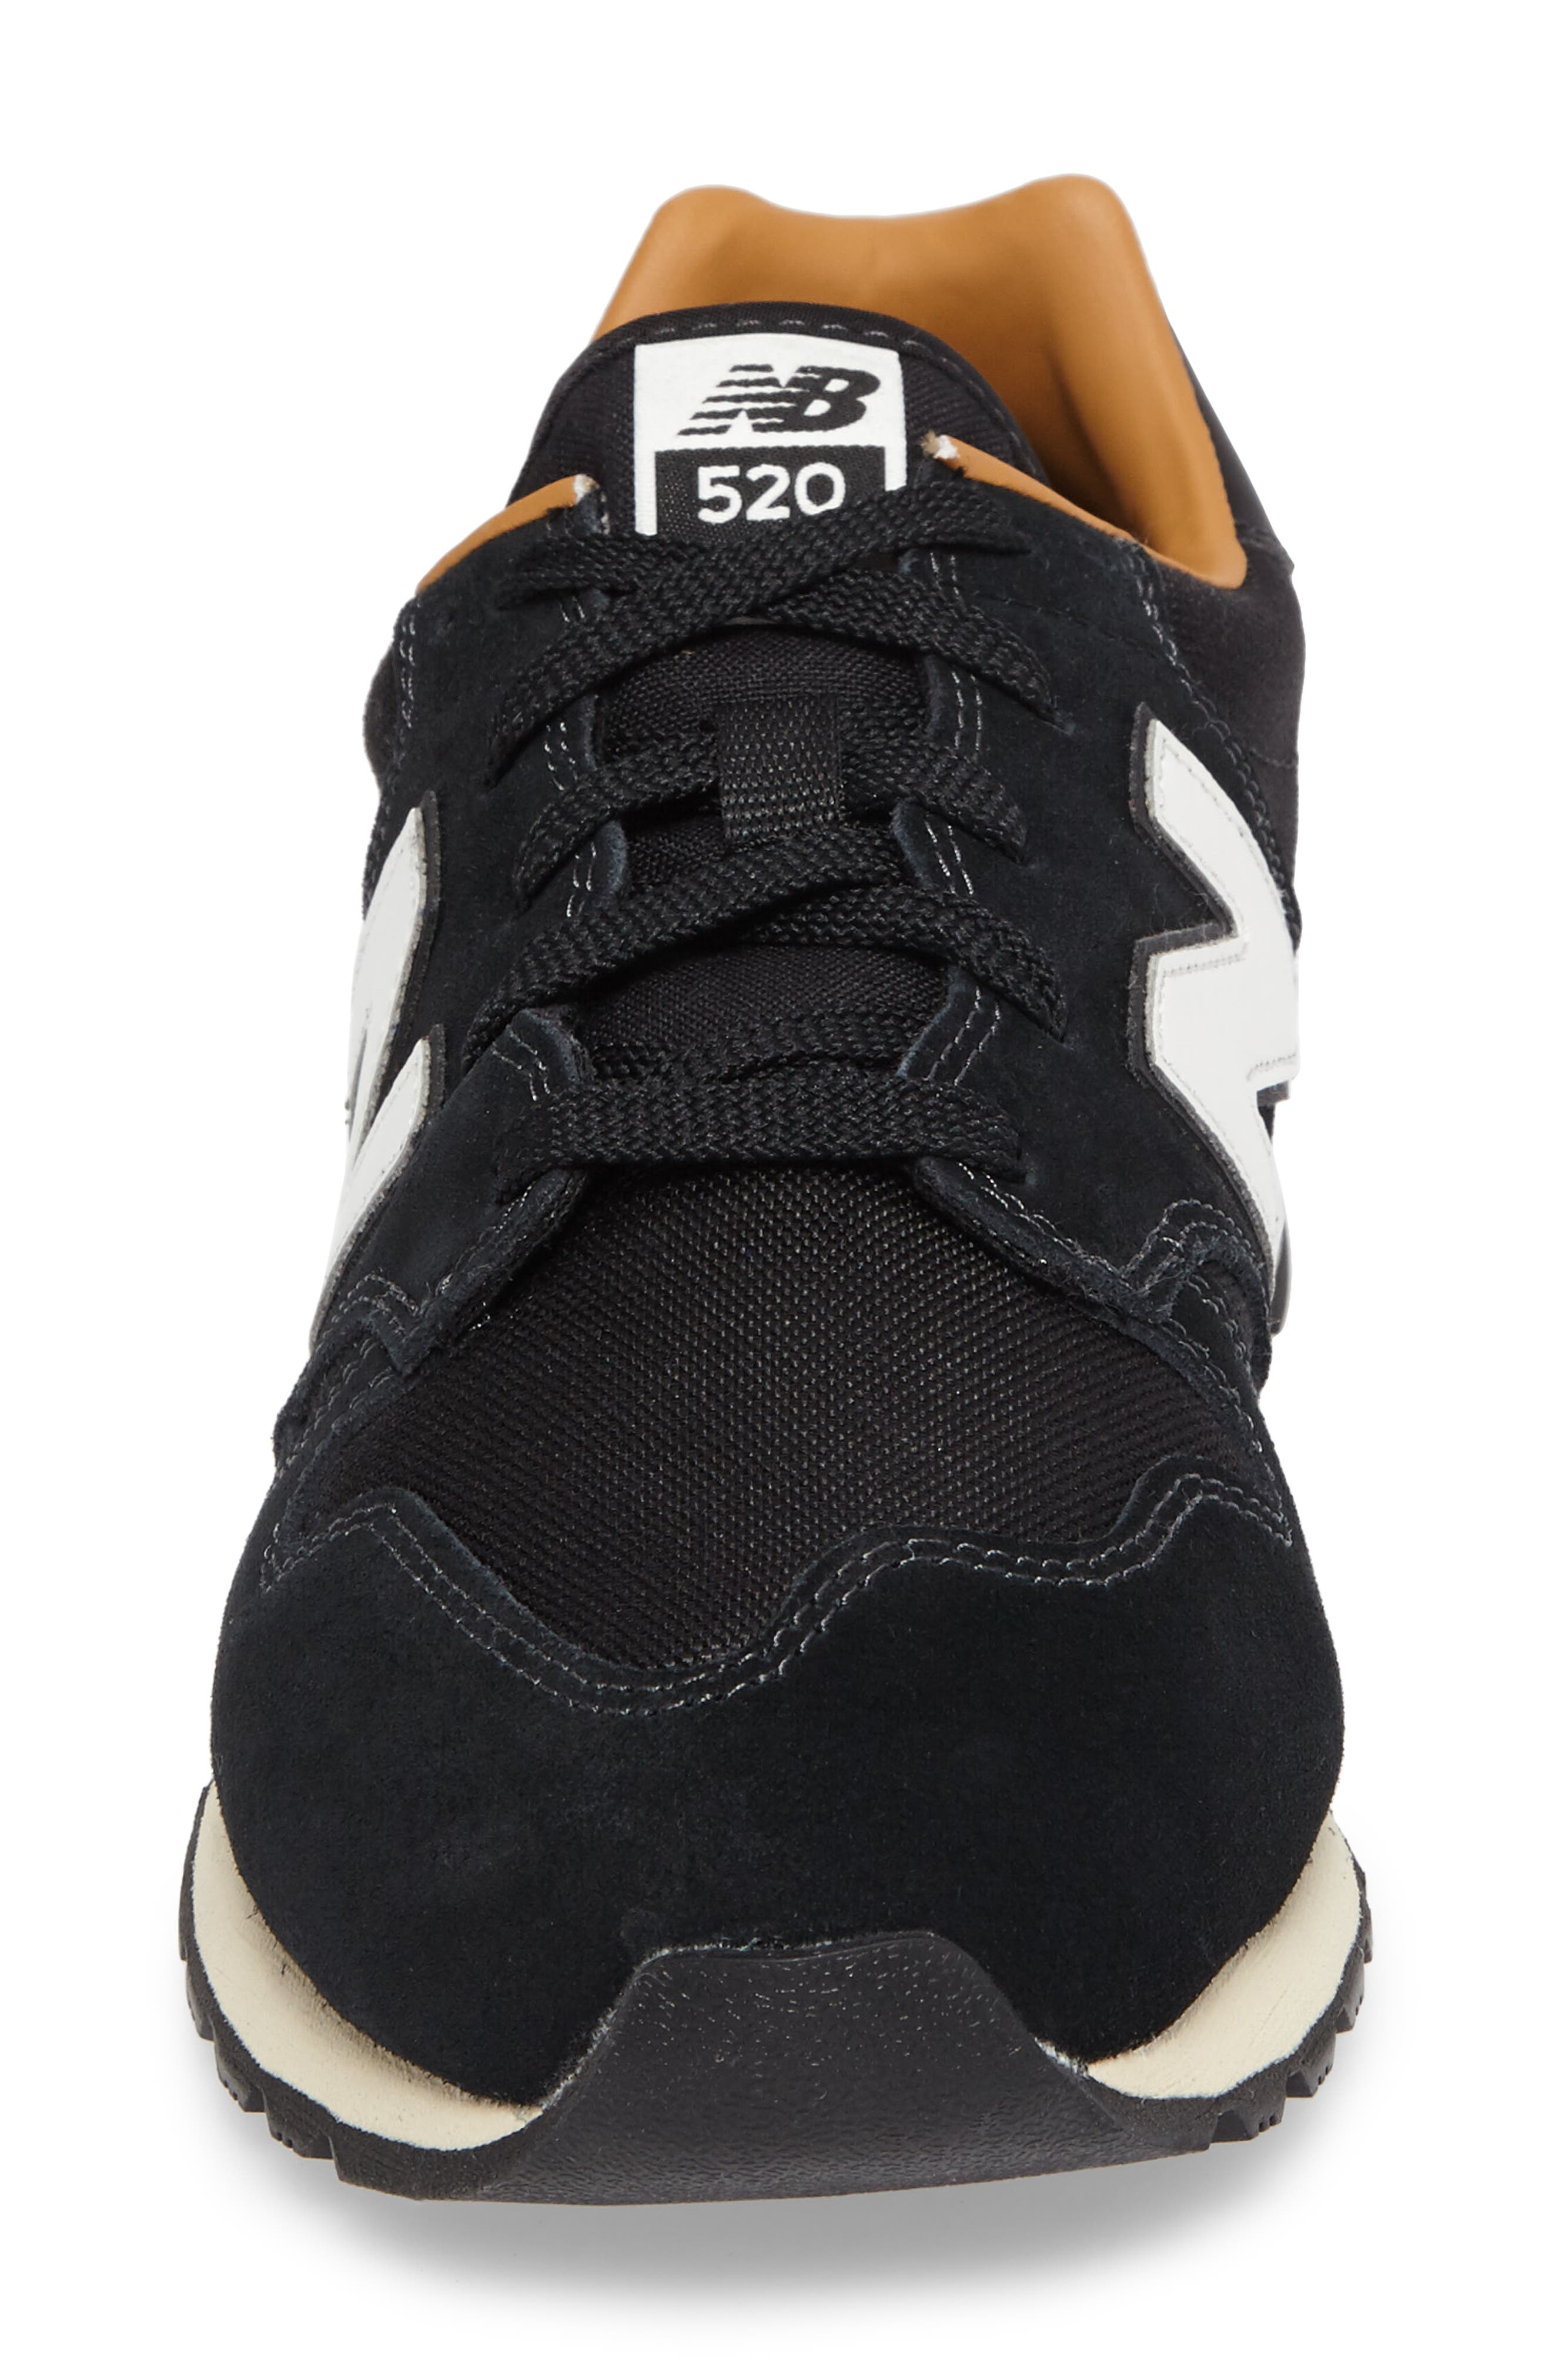 520 Sneaker,                             Alternate thumbnail 4, color,                             020